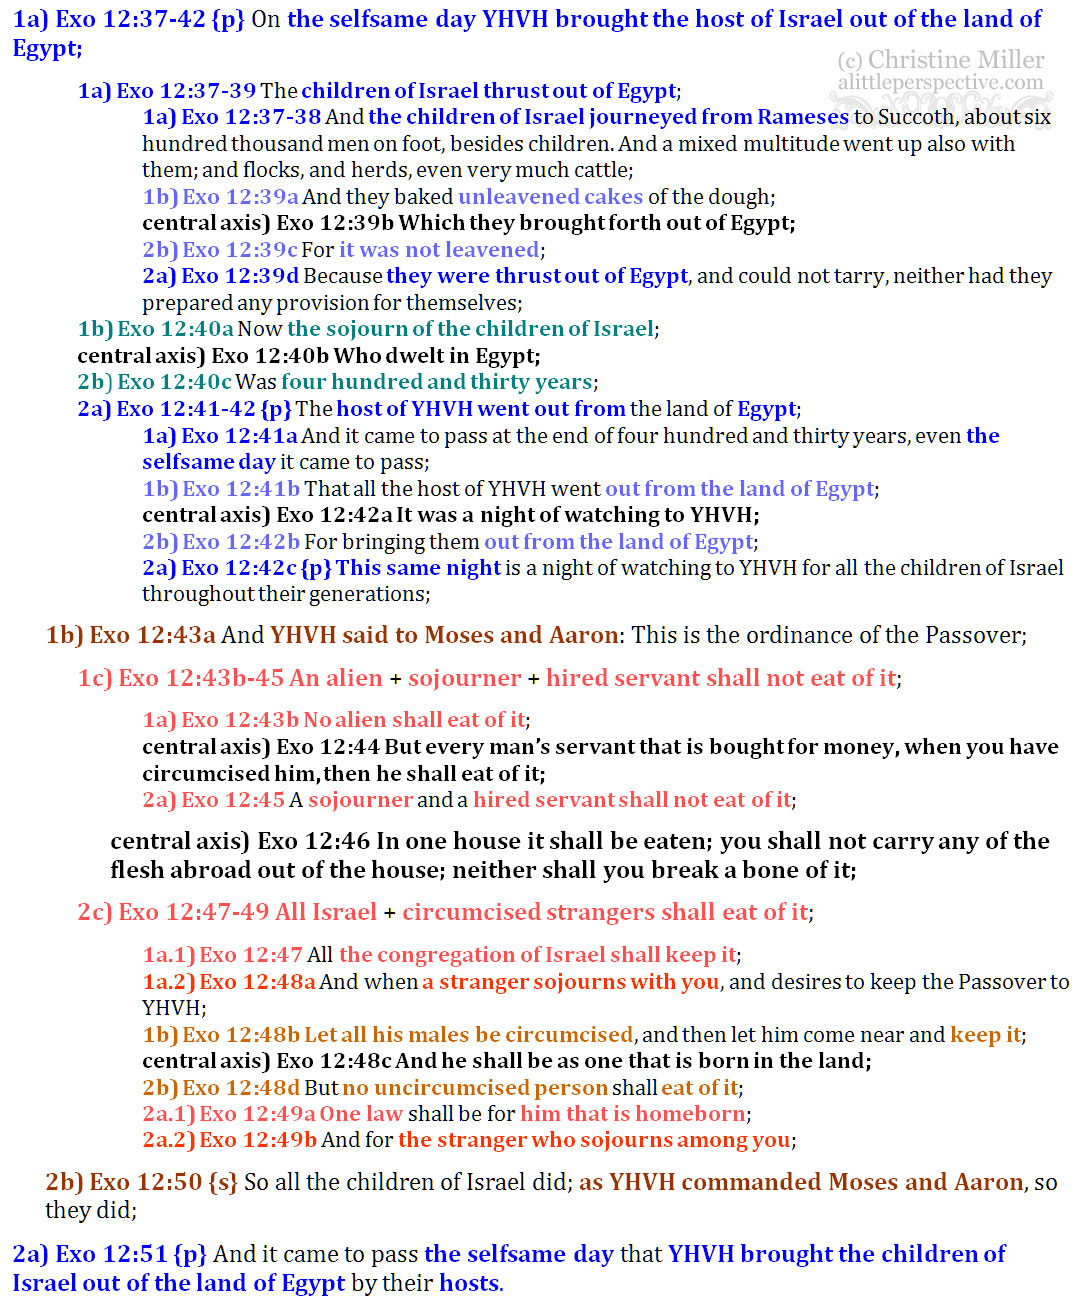 Exo 12:37-51 chiasm | christine's bible study at alittleperspective.com